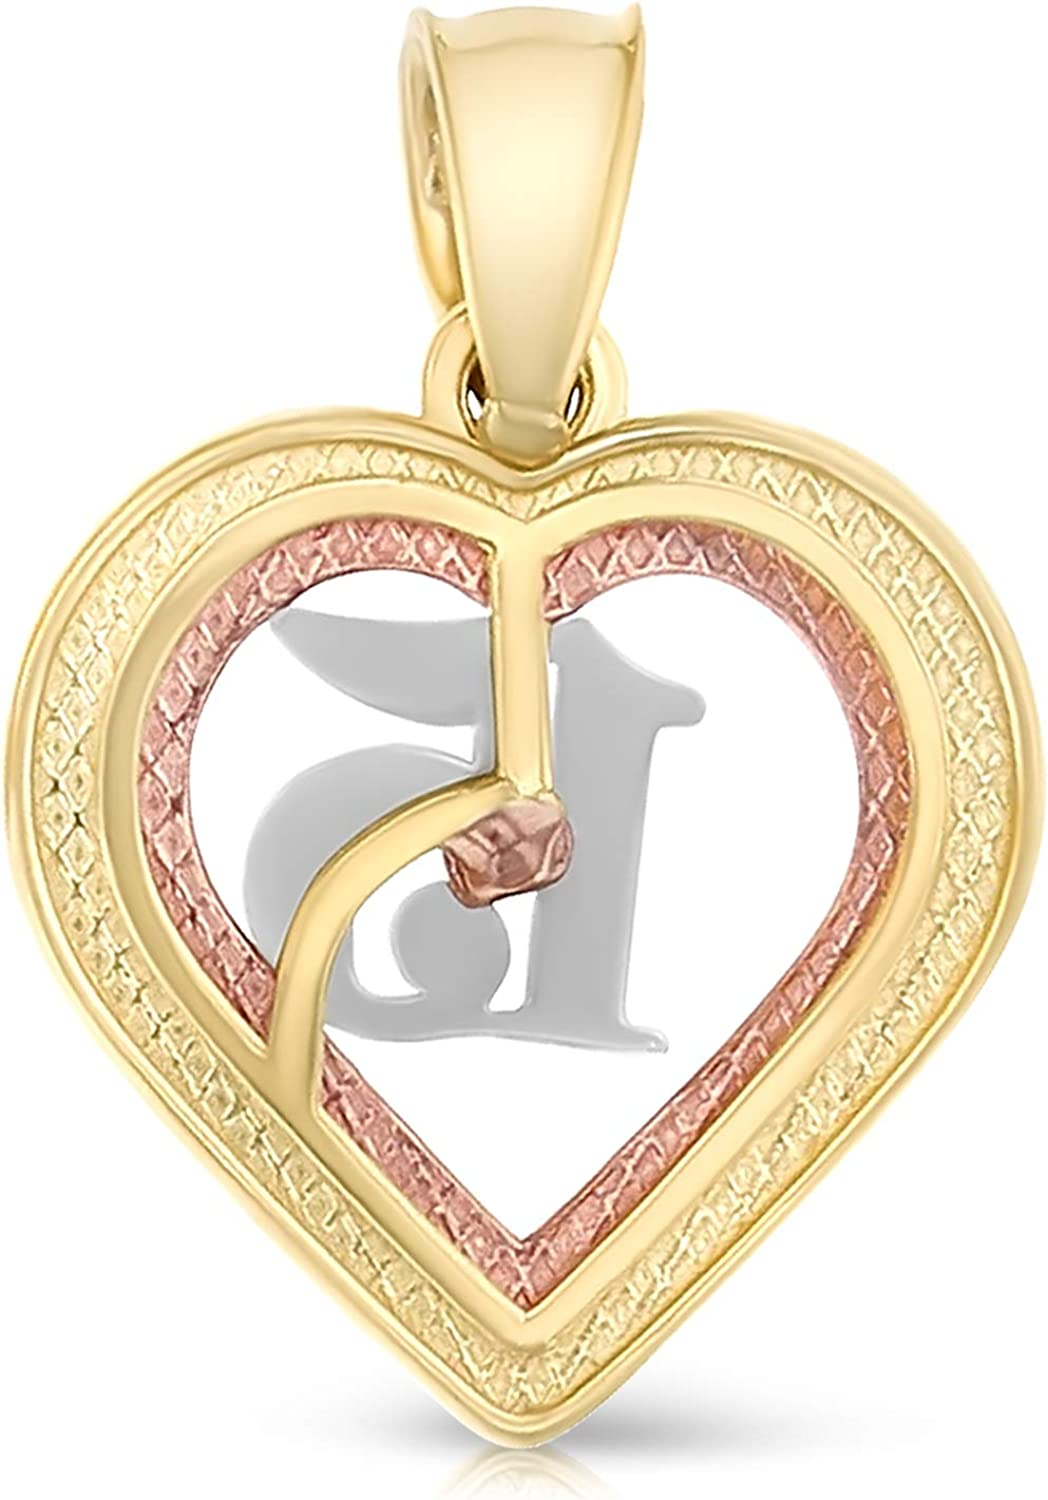 14K White Gold 15 Years Quinceanera Years Heart Charm Pendant with 1.5mm Rope Chain Necklace